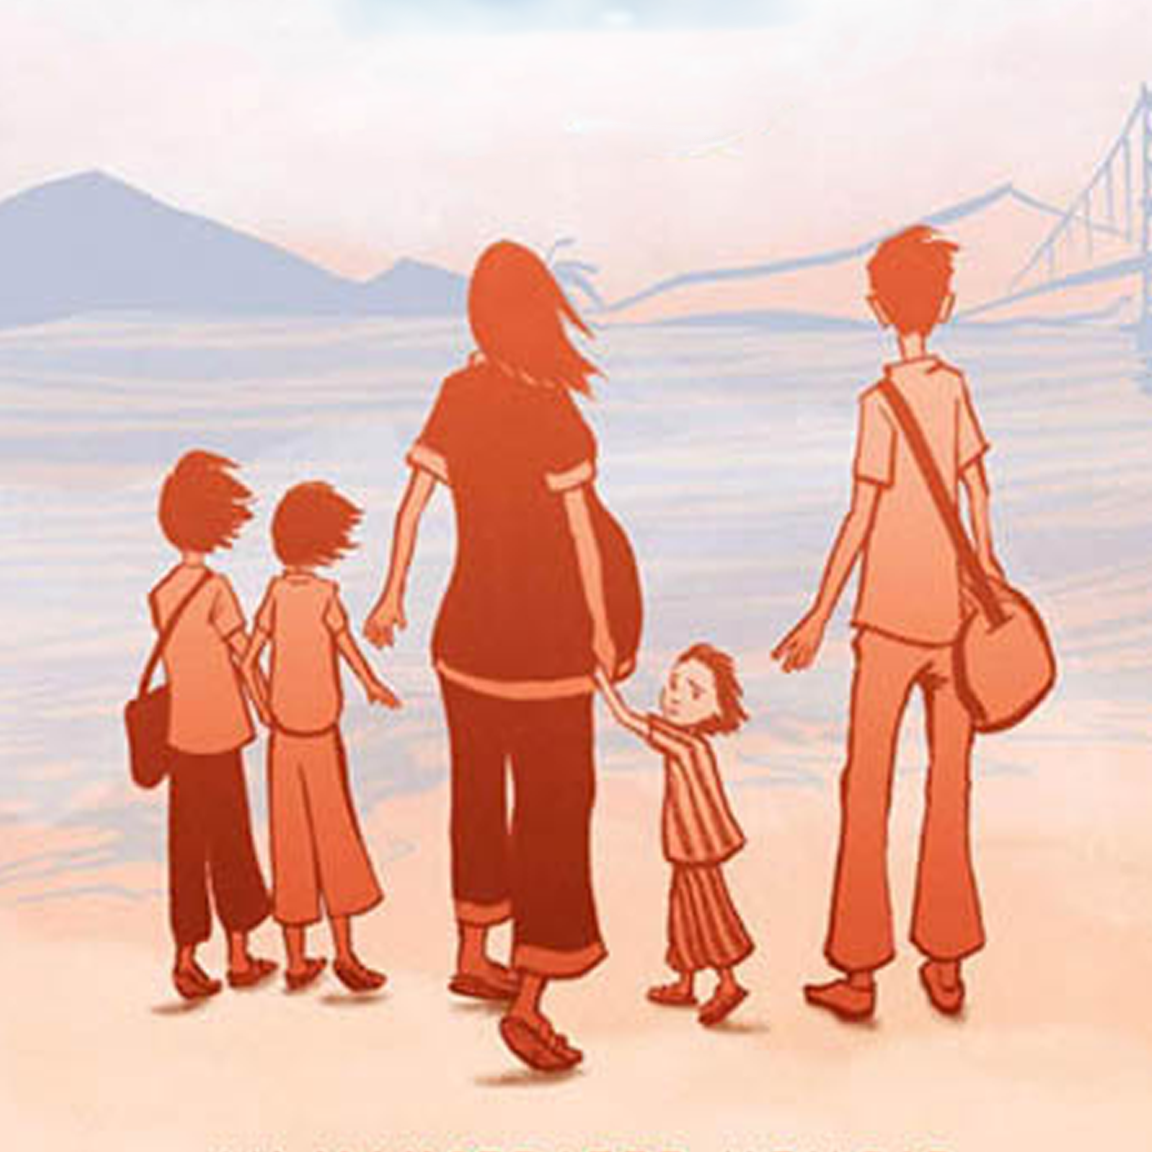 NBC News: 'The Best We Could Do': Thi Bui Honors Family's Immigration Story in Debut Graphic Novel - Before she began to work on her graphic novel in 2007, Thi Bui had never drawn a comic in her life. Now, 10 years later, she'll debut her family's story through an illustrated memoir already being praised by literary heavyweights . . .